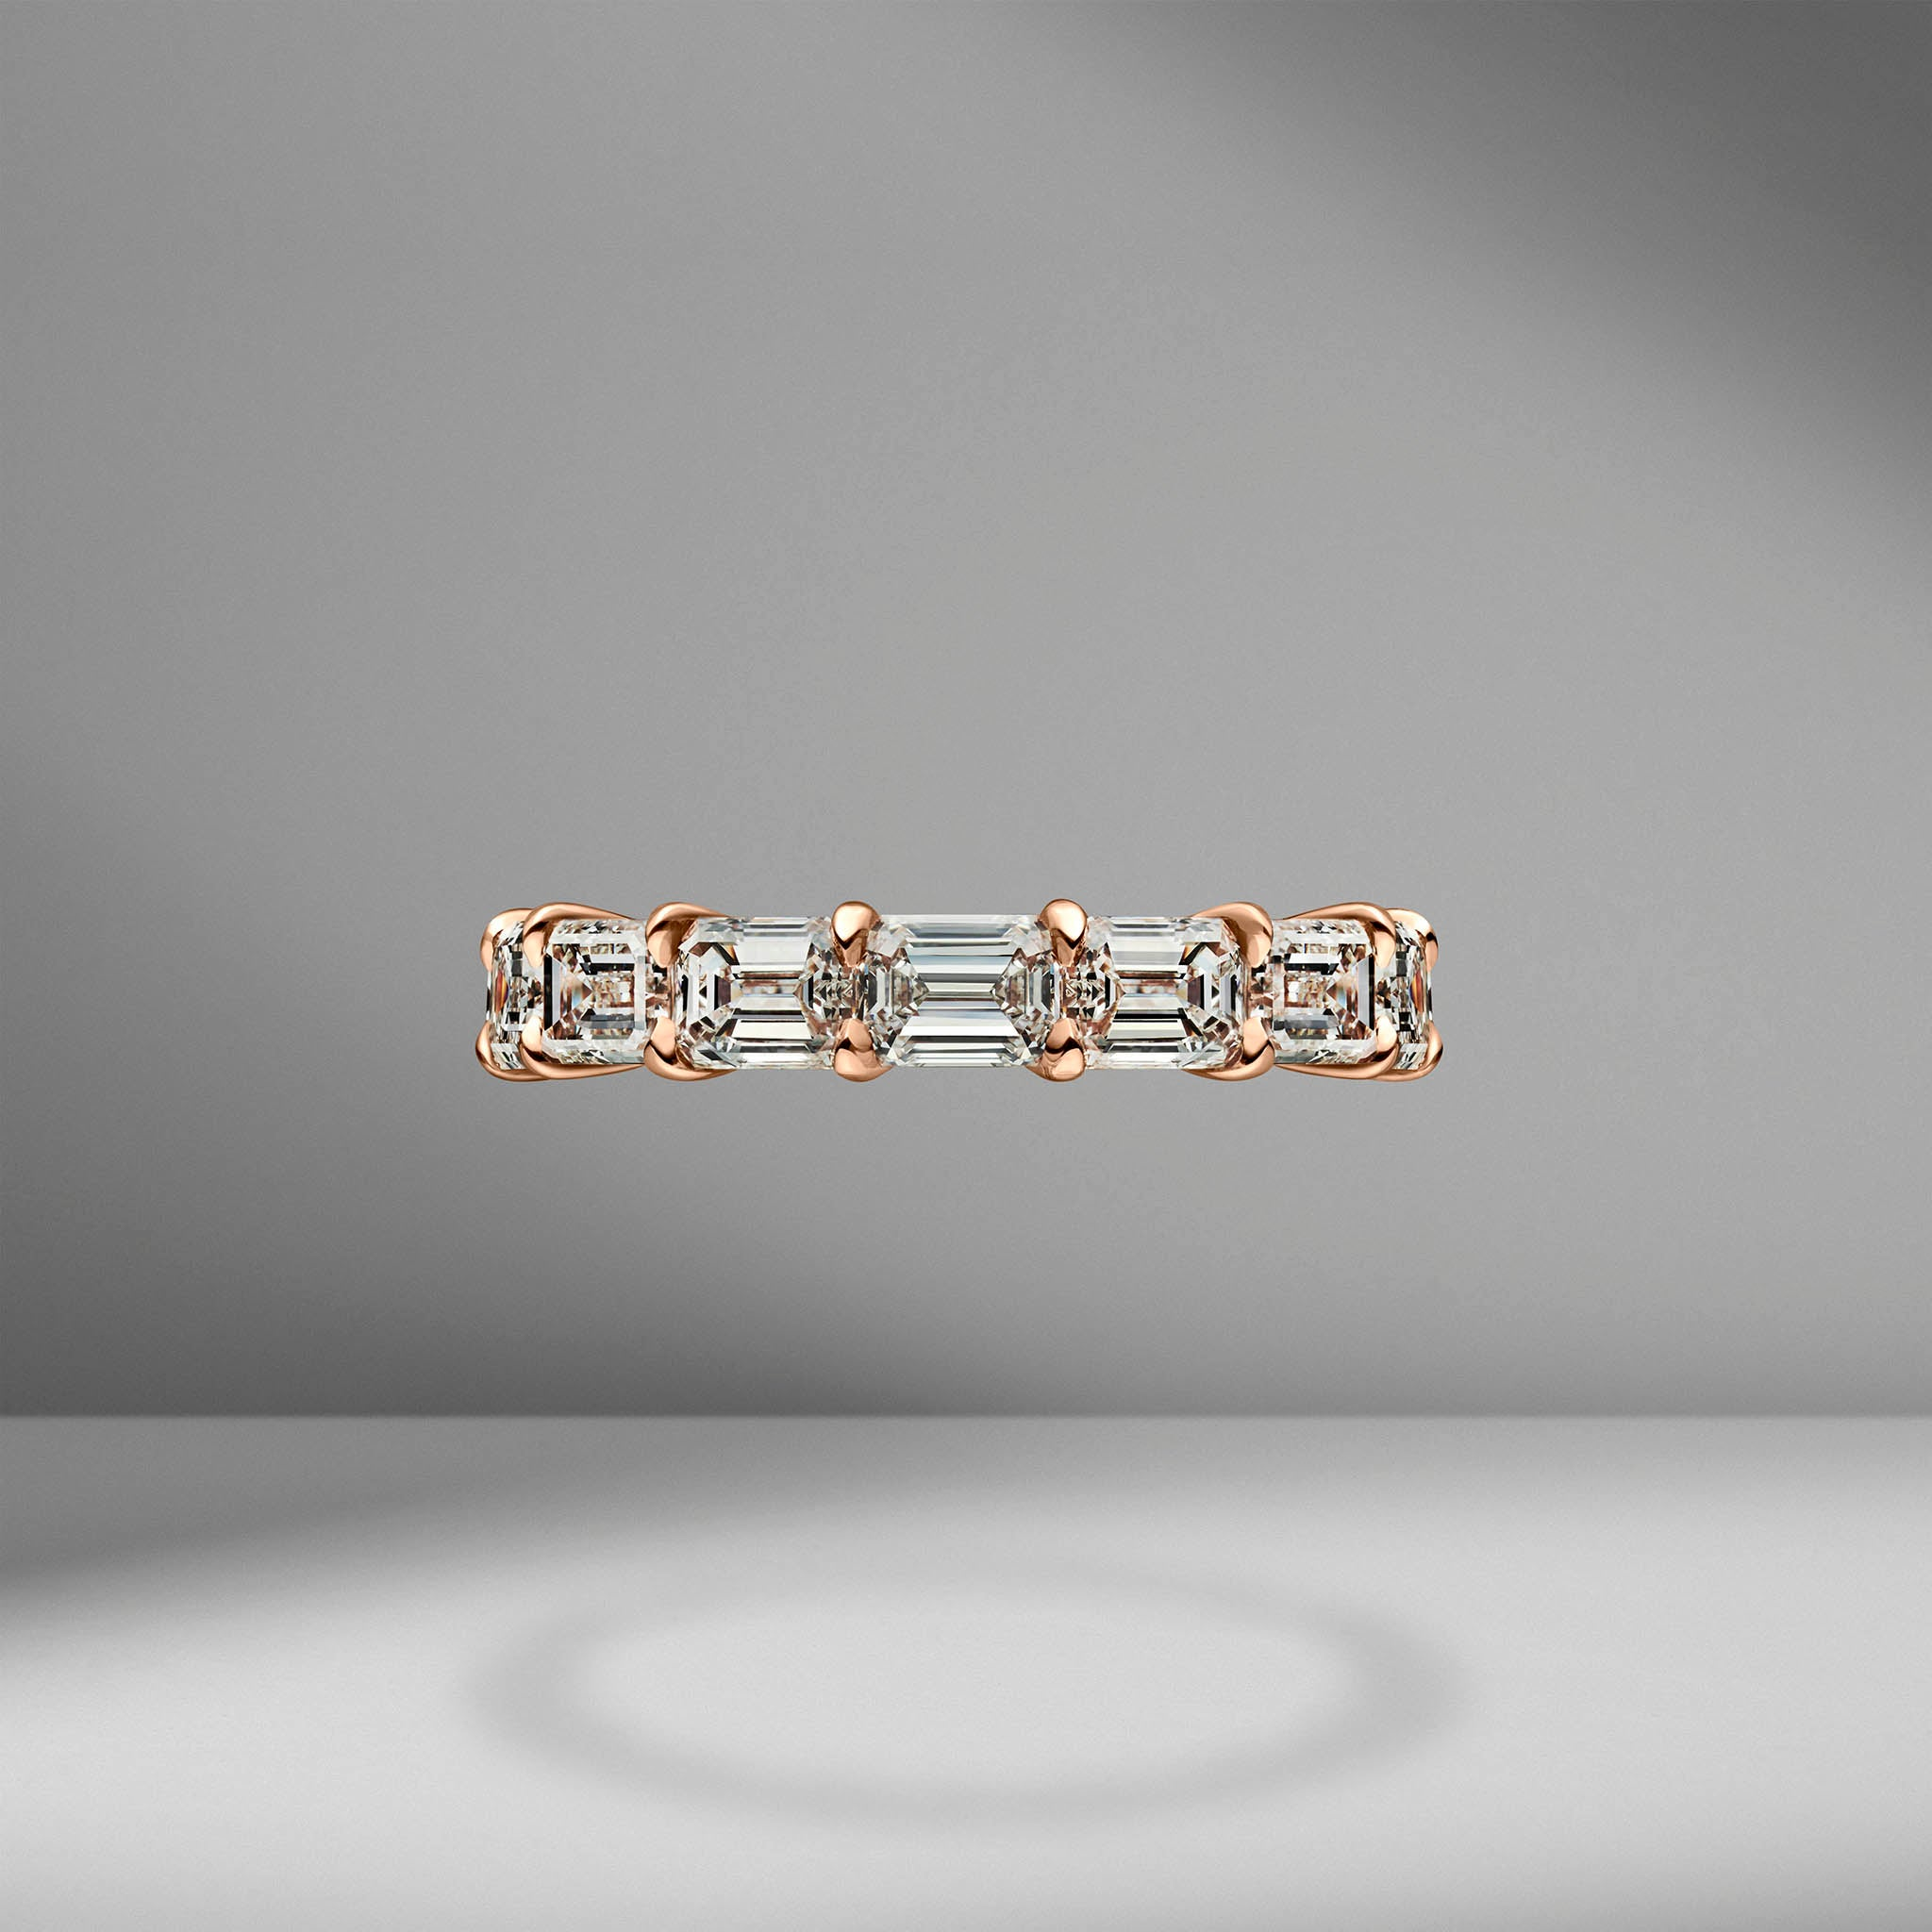 East-West Set Emerald Cut Eternity Band .30